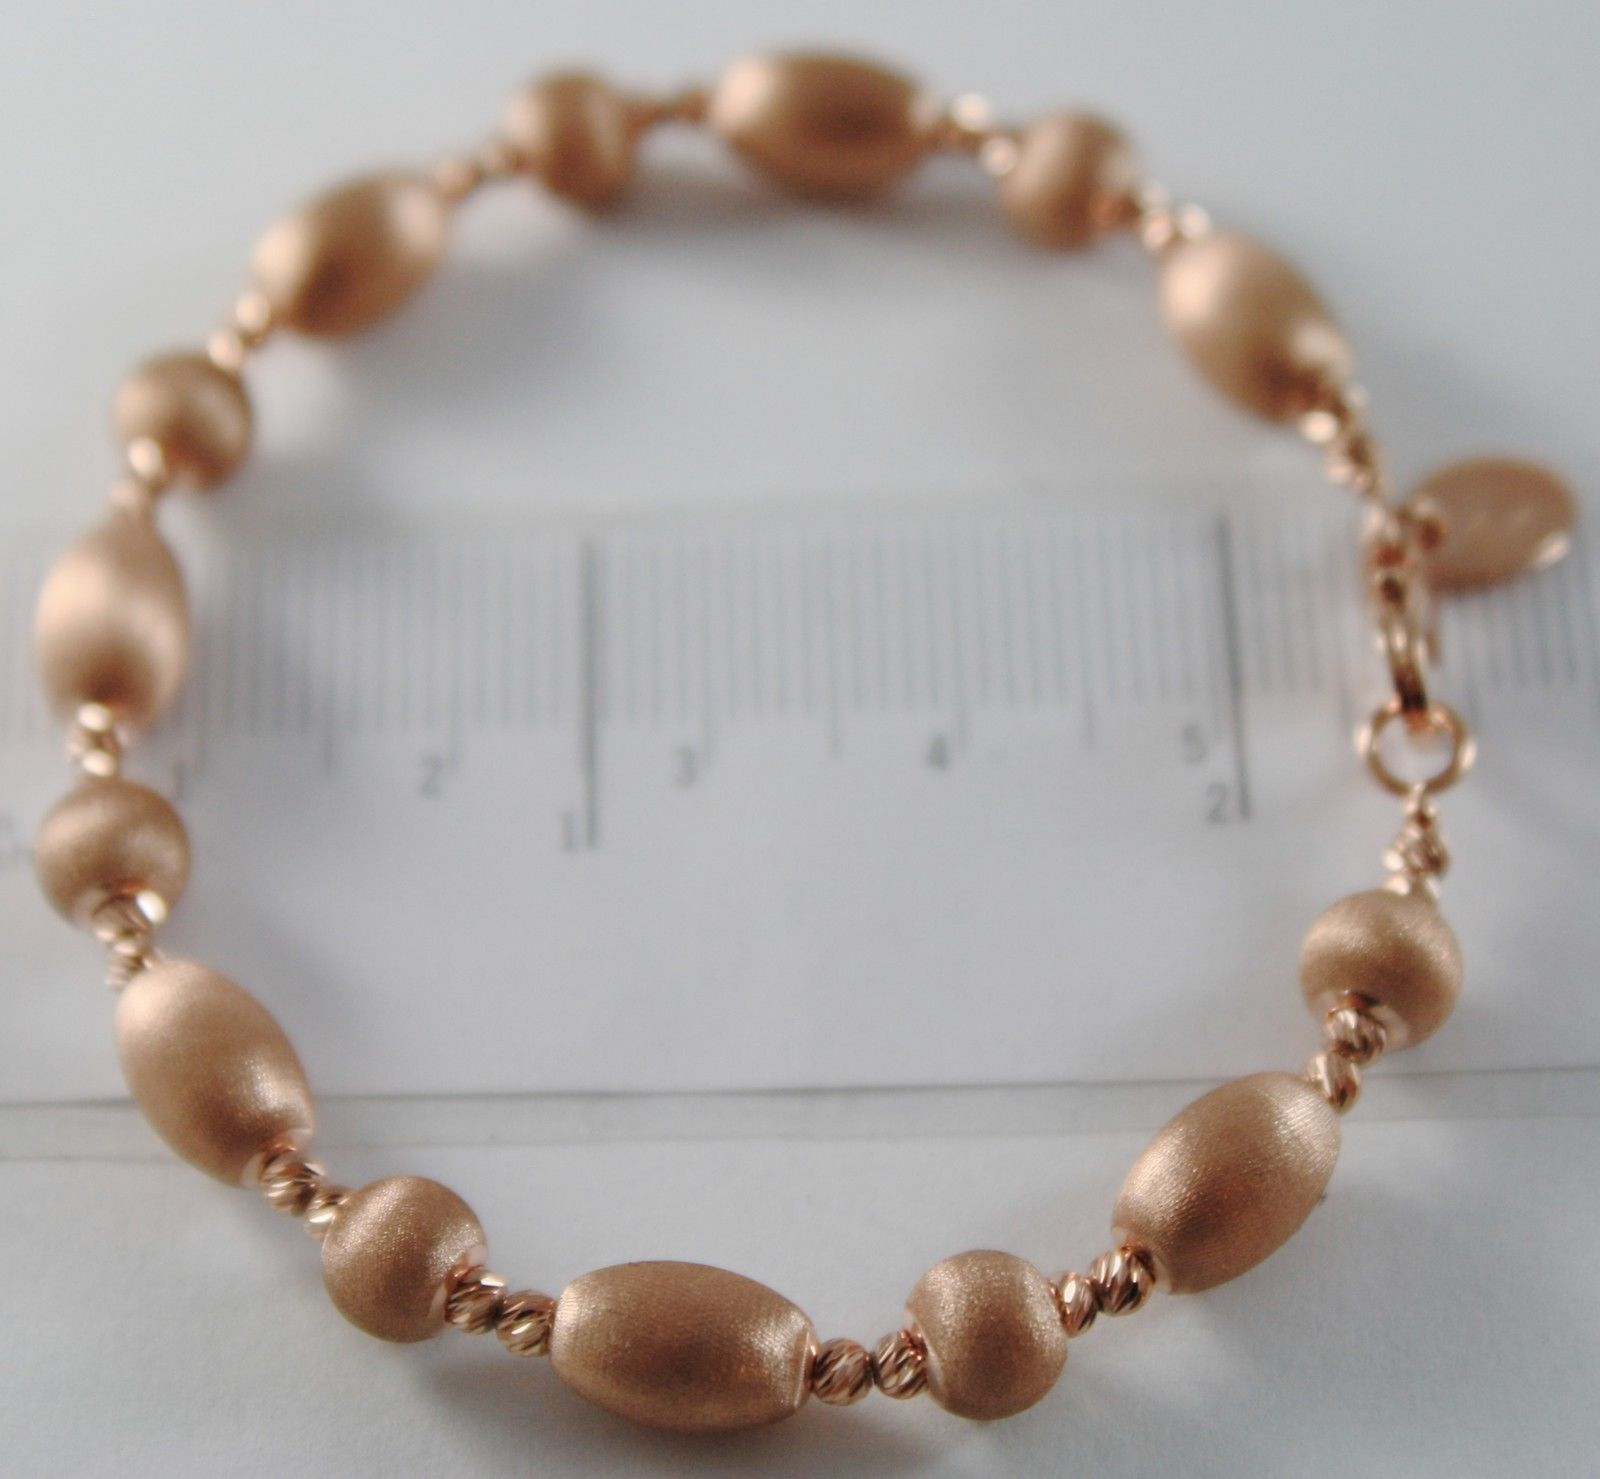 18K ROSE GOLD BANGLE SATIN WORKED OVALS FACETED BALLS BRACELET MADE IN ITALY